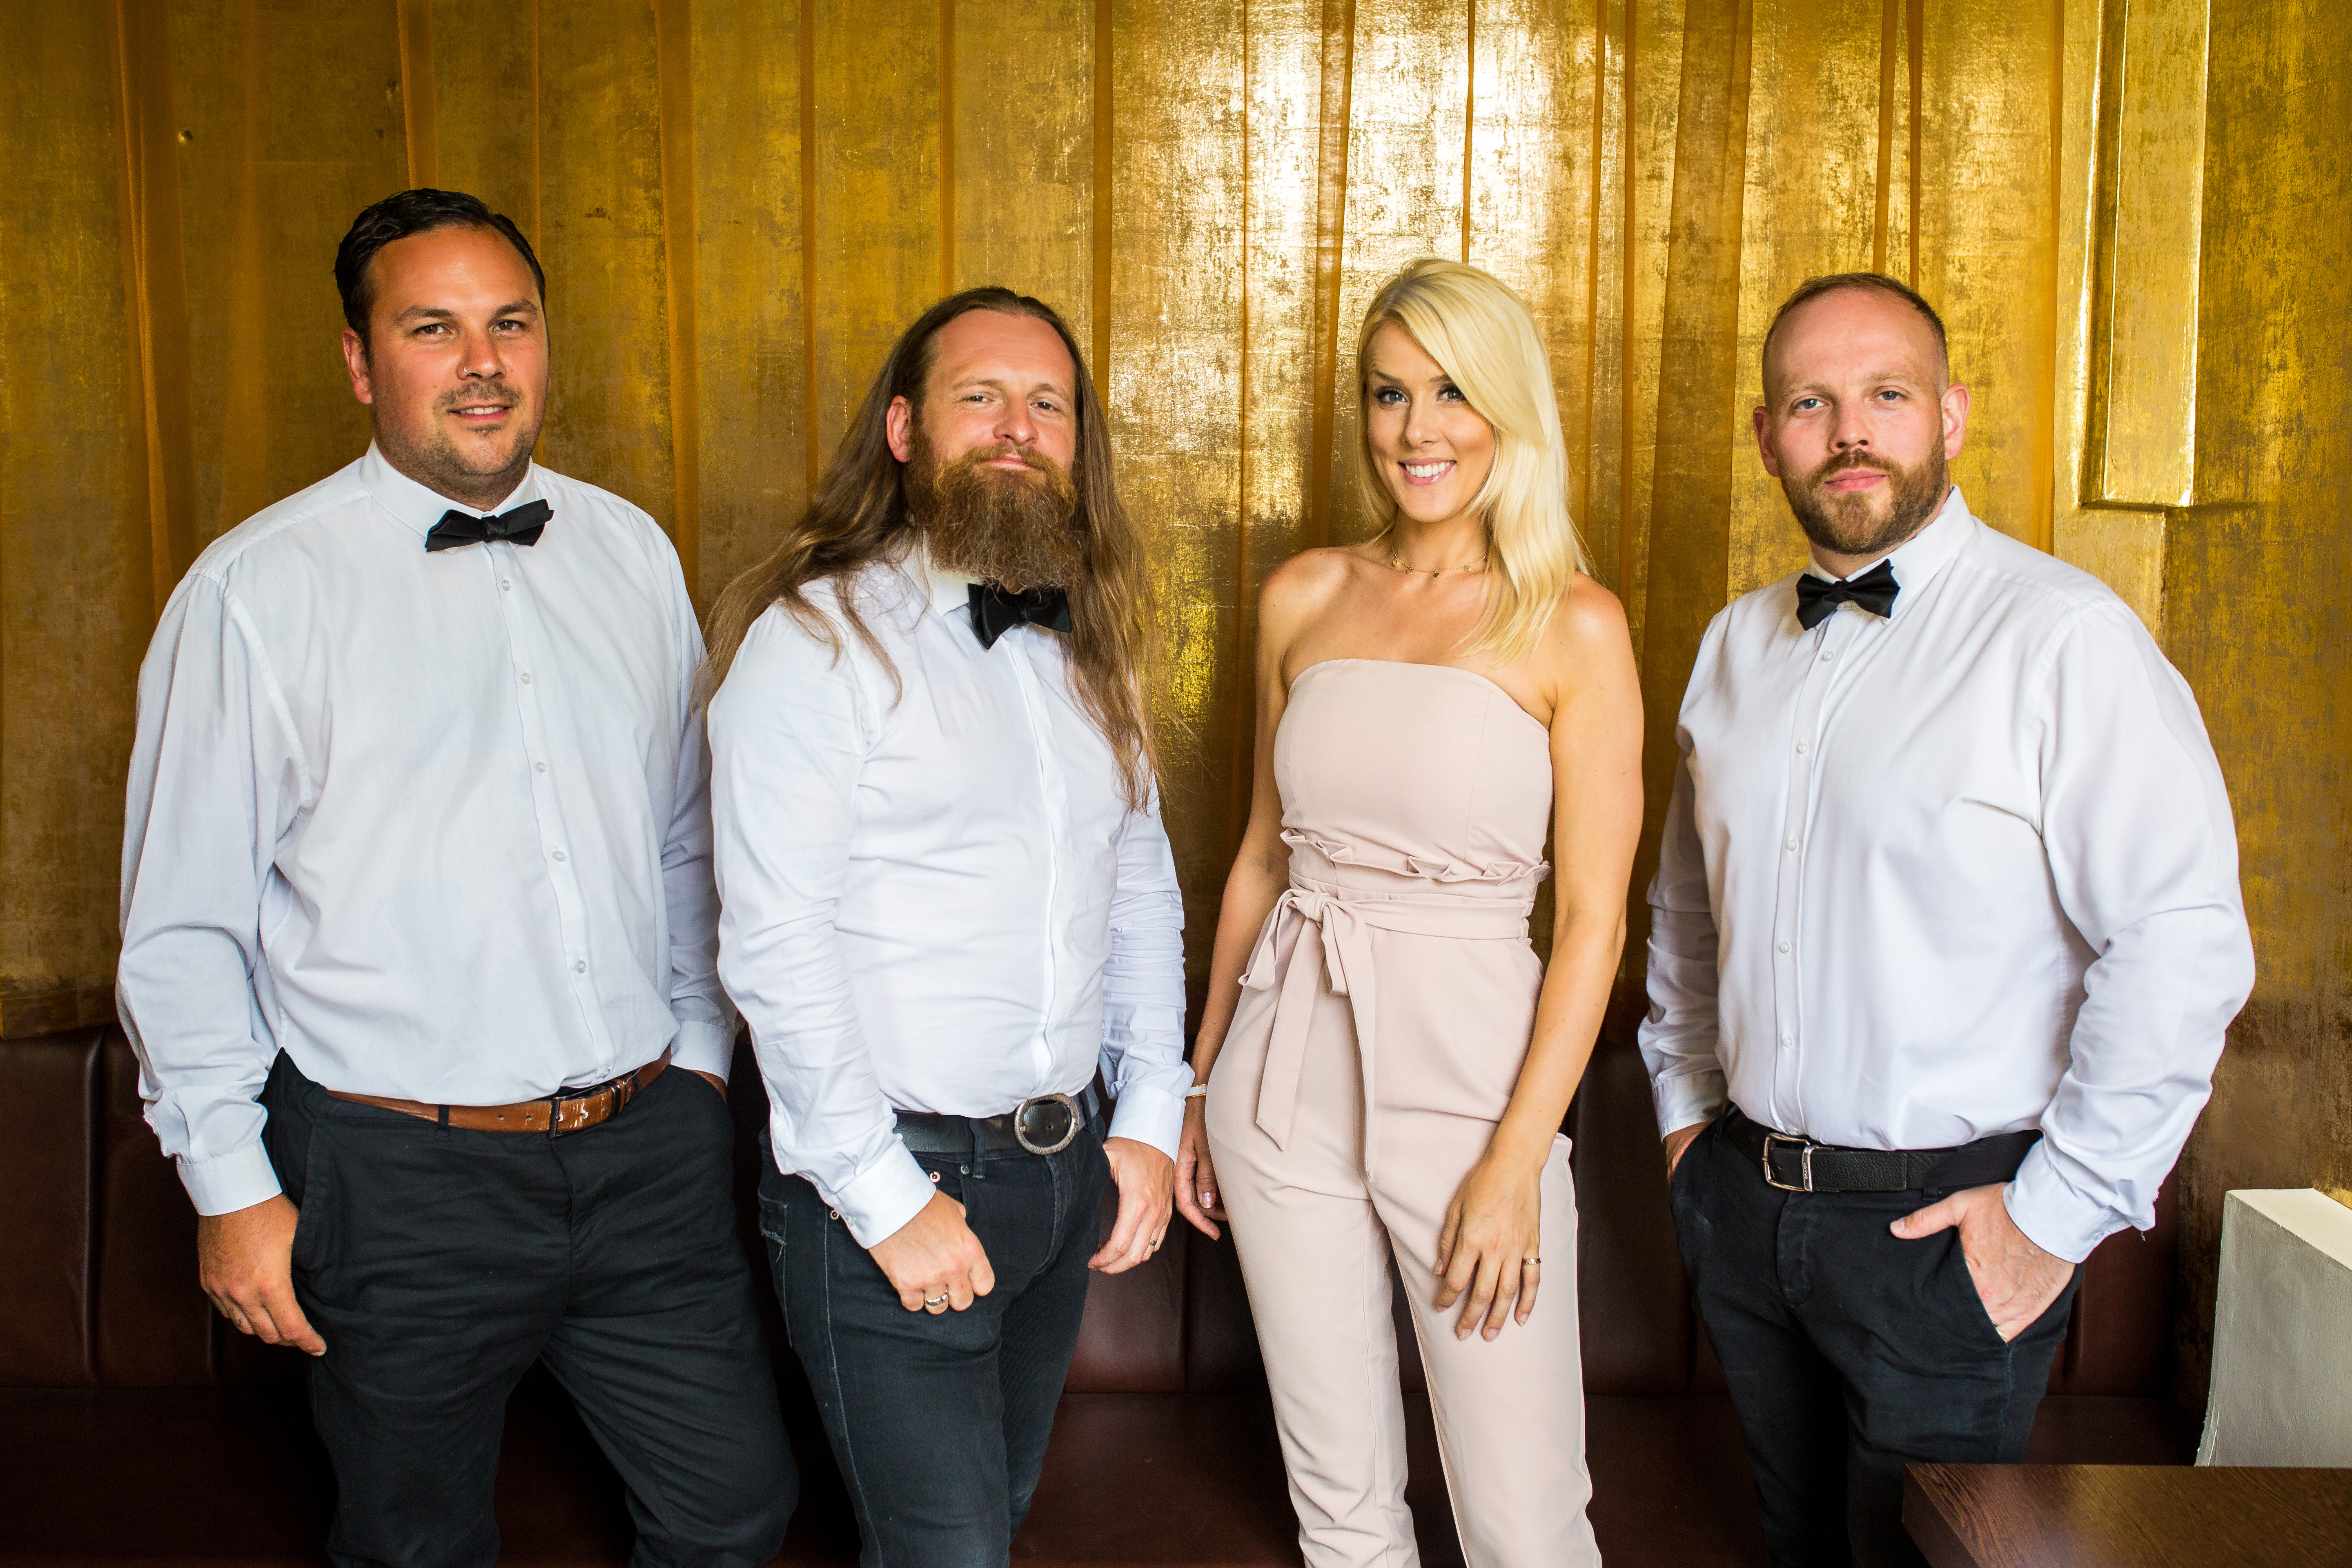 The Deps party function band hire for events